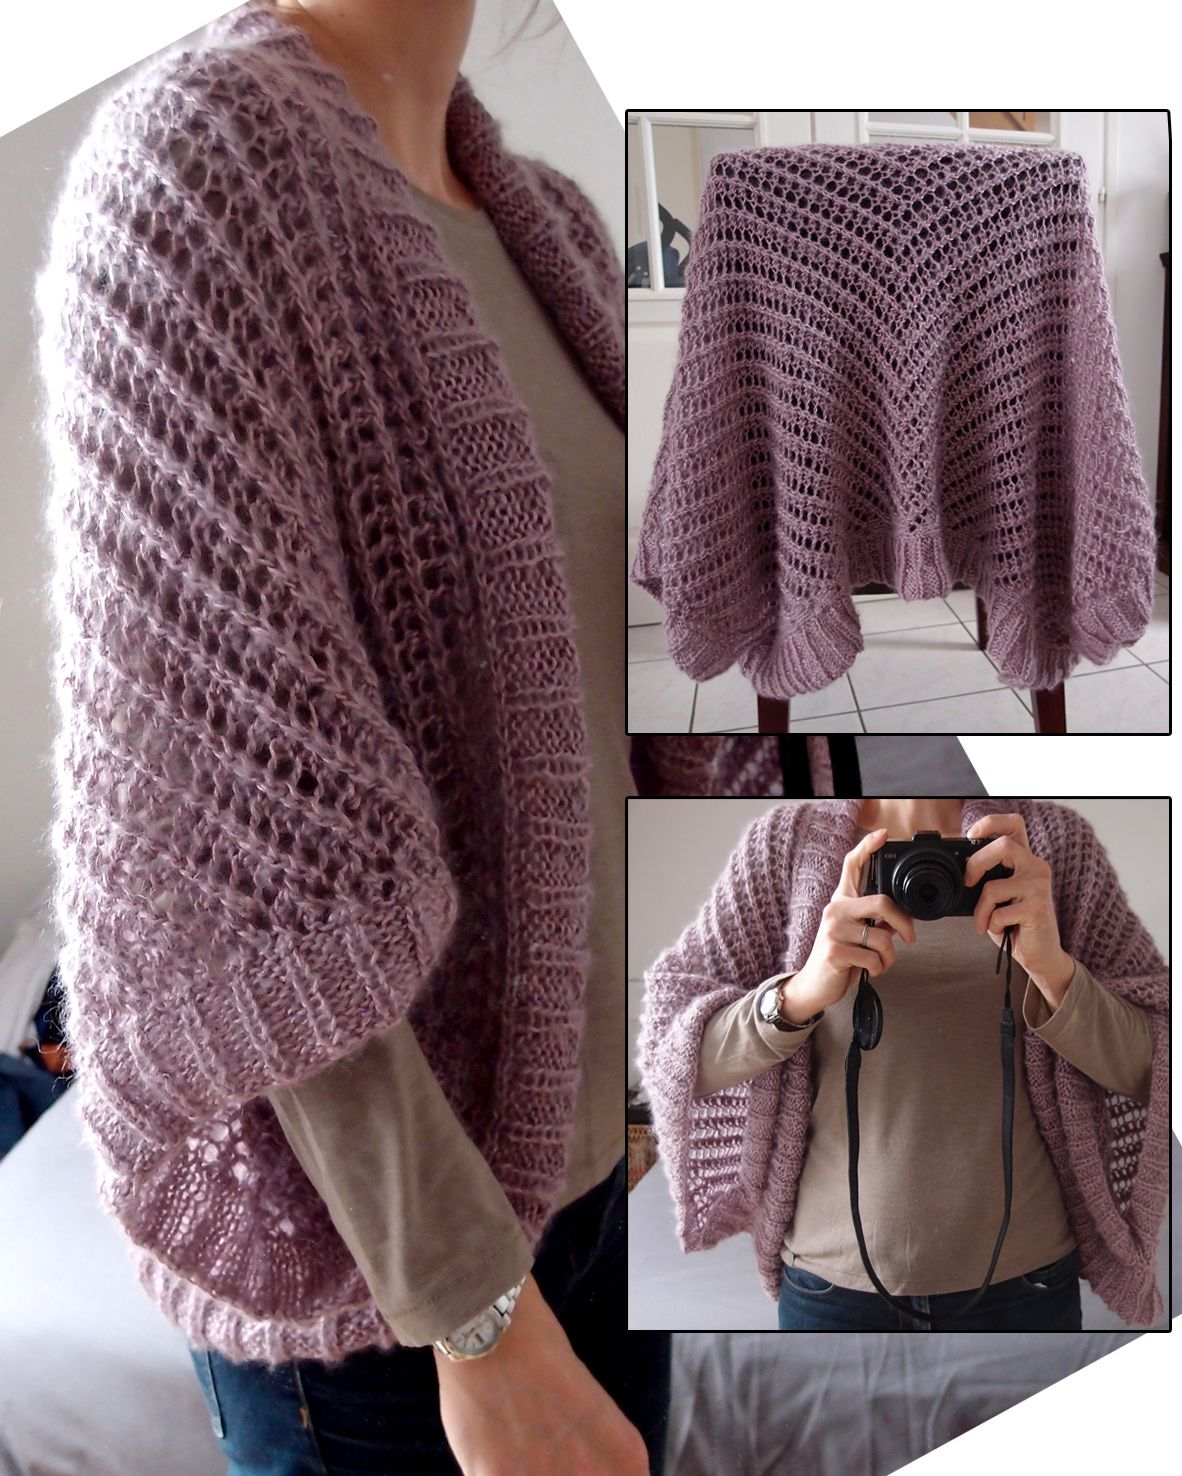 86e1cd209 Free Knitting Pattern for Lace Sweater Wrap -This lace cardigan is ...